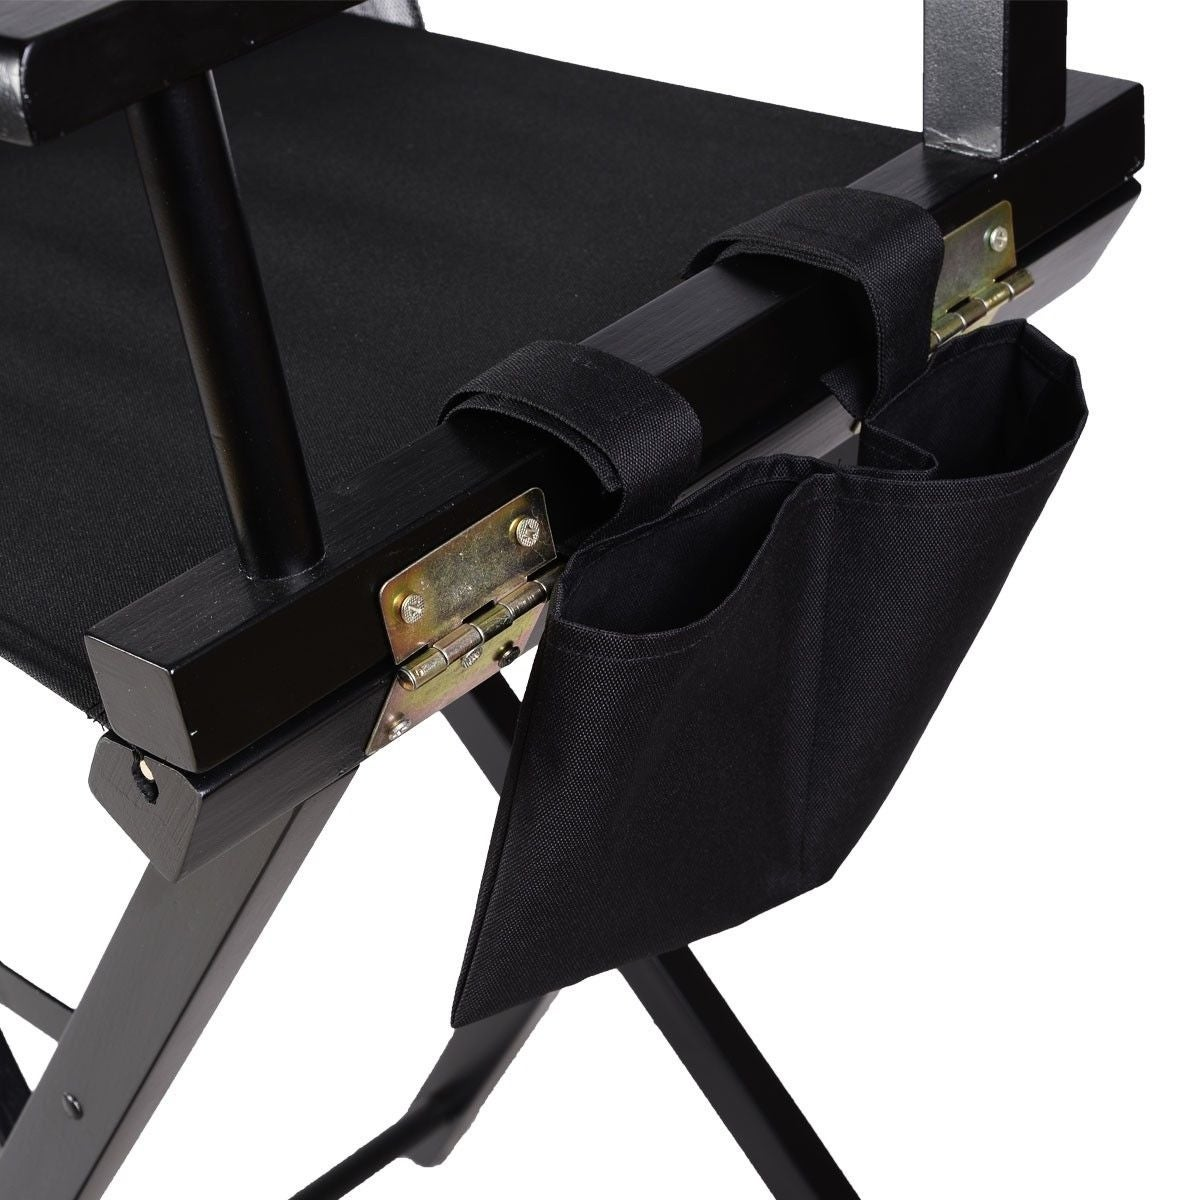 Shop Costway Professional Makeup Artist Directors Chair Wood Light Weight Foldable Black - Free Shipping Today - Overstock - 18529761